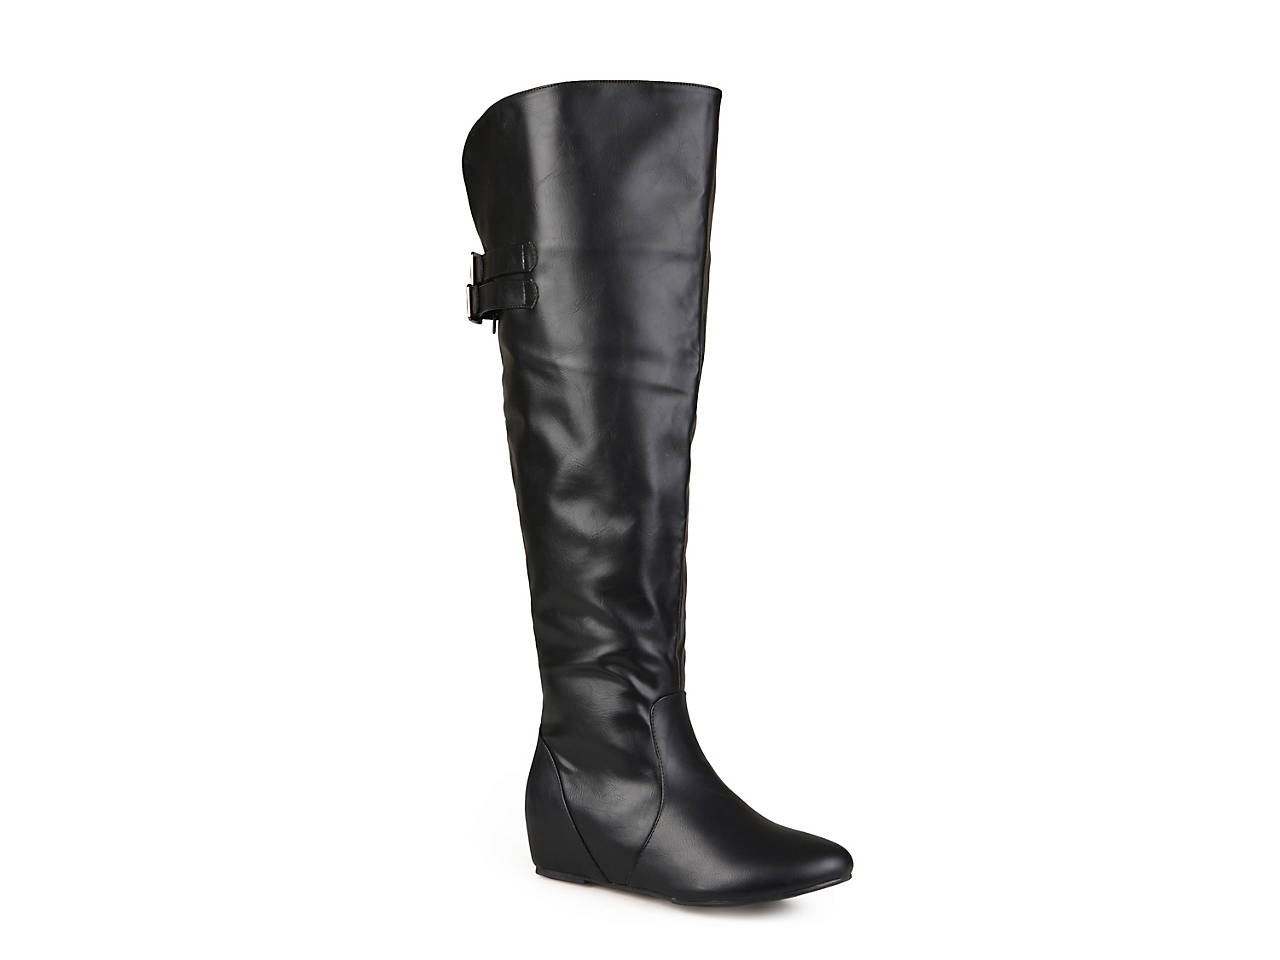 Women's Over The Knee Boots | DSW